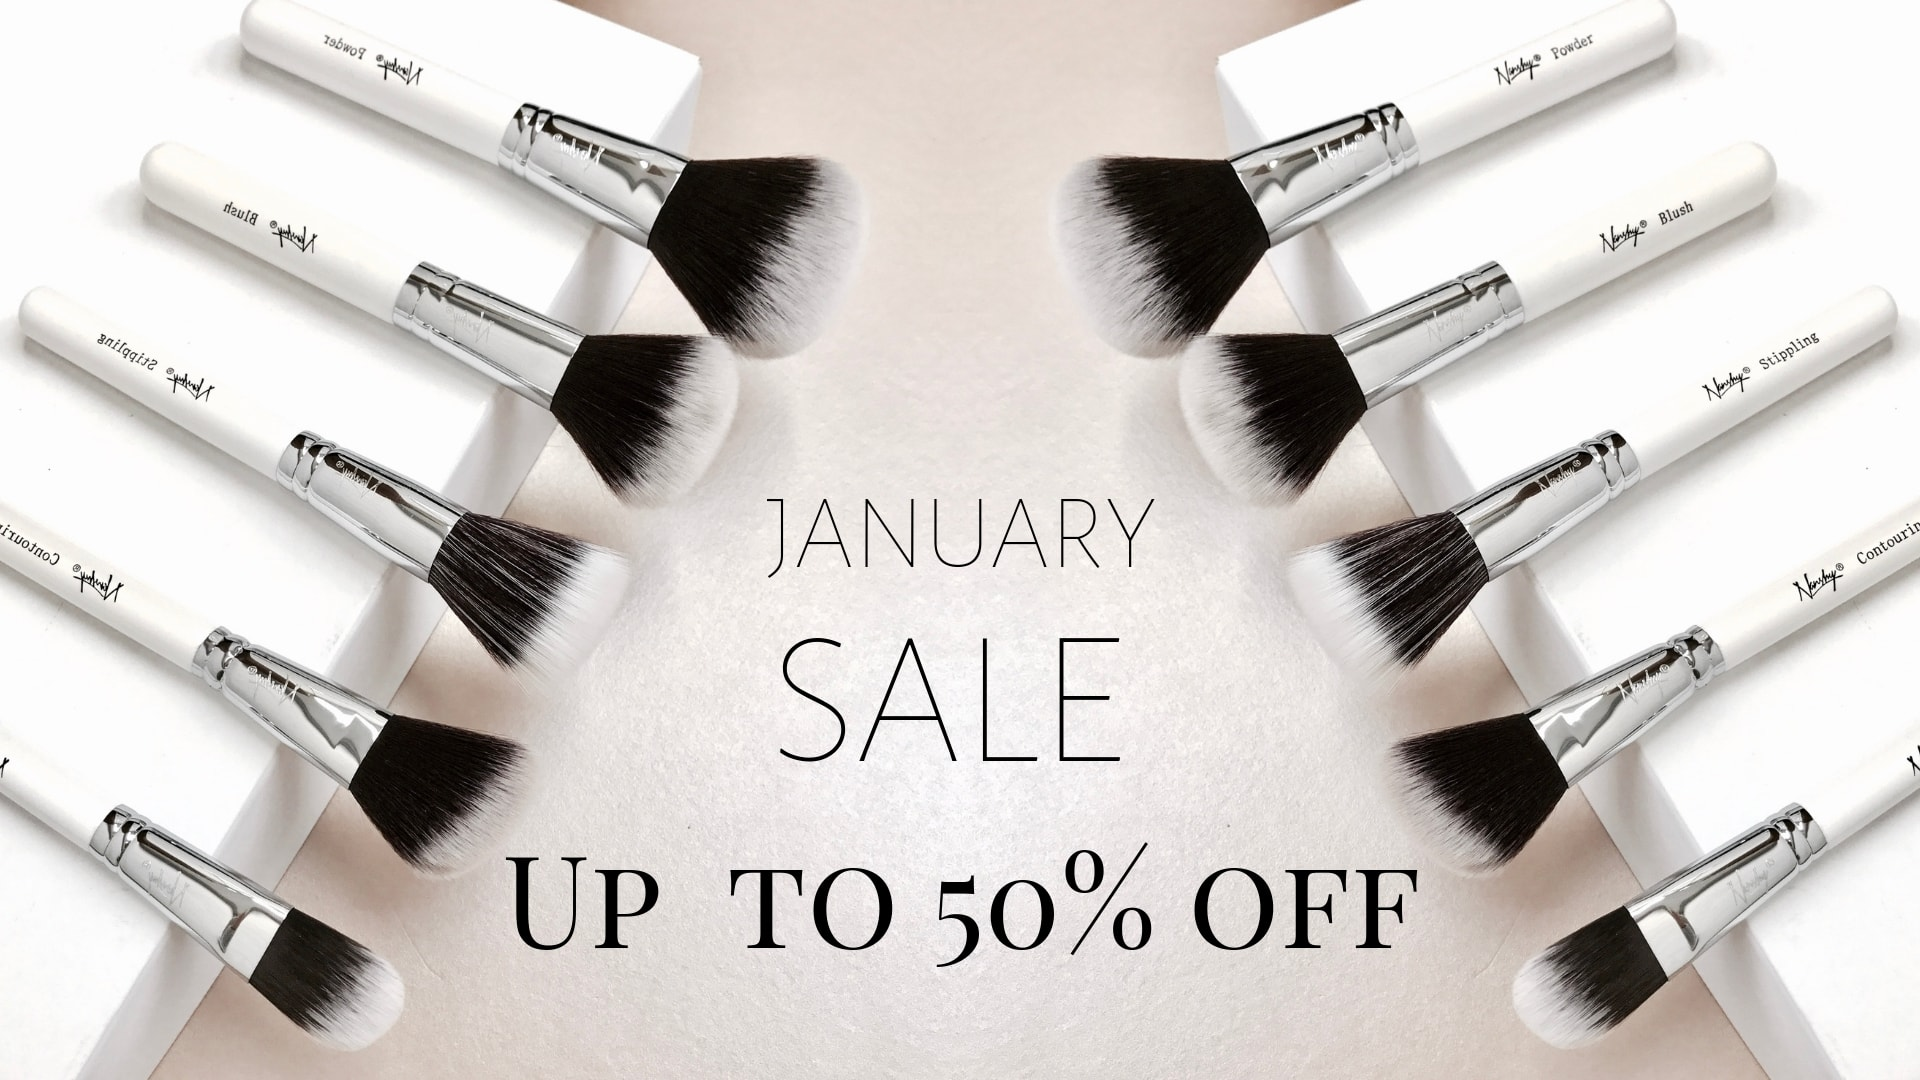 JANUARY SALE UP TO 50%OFF